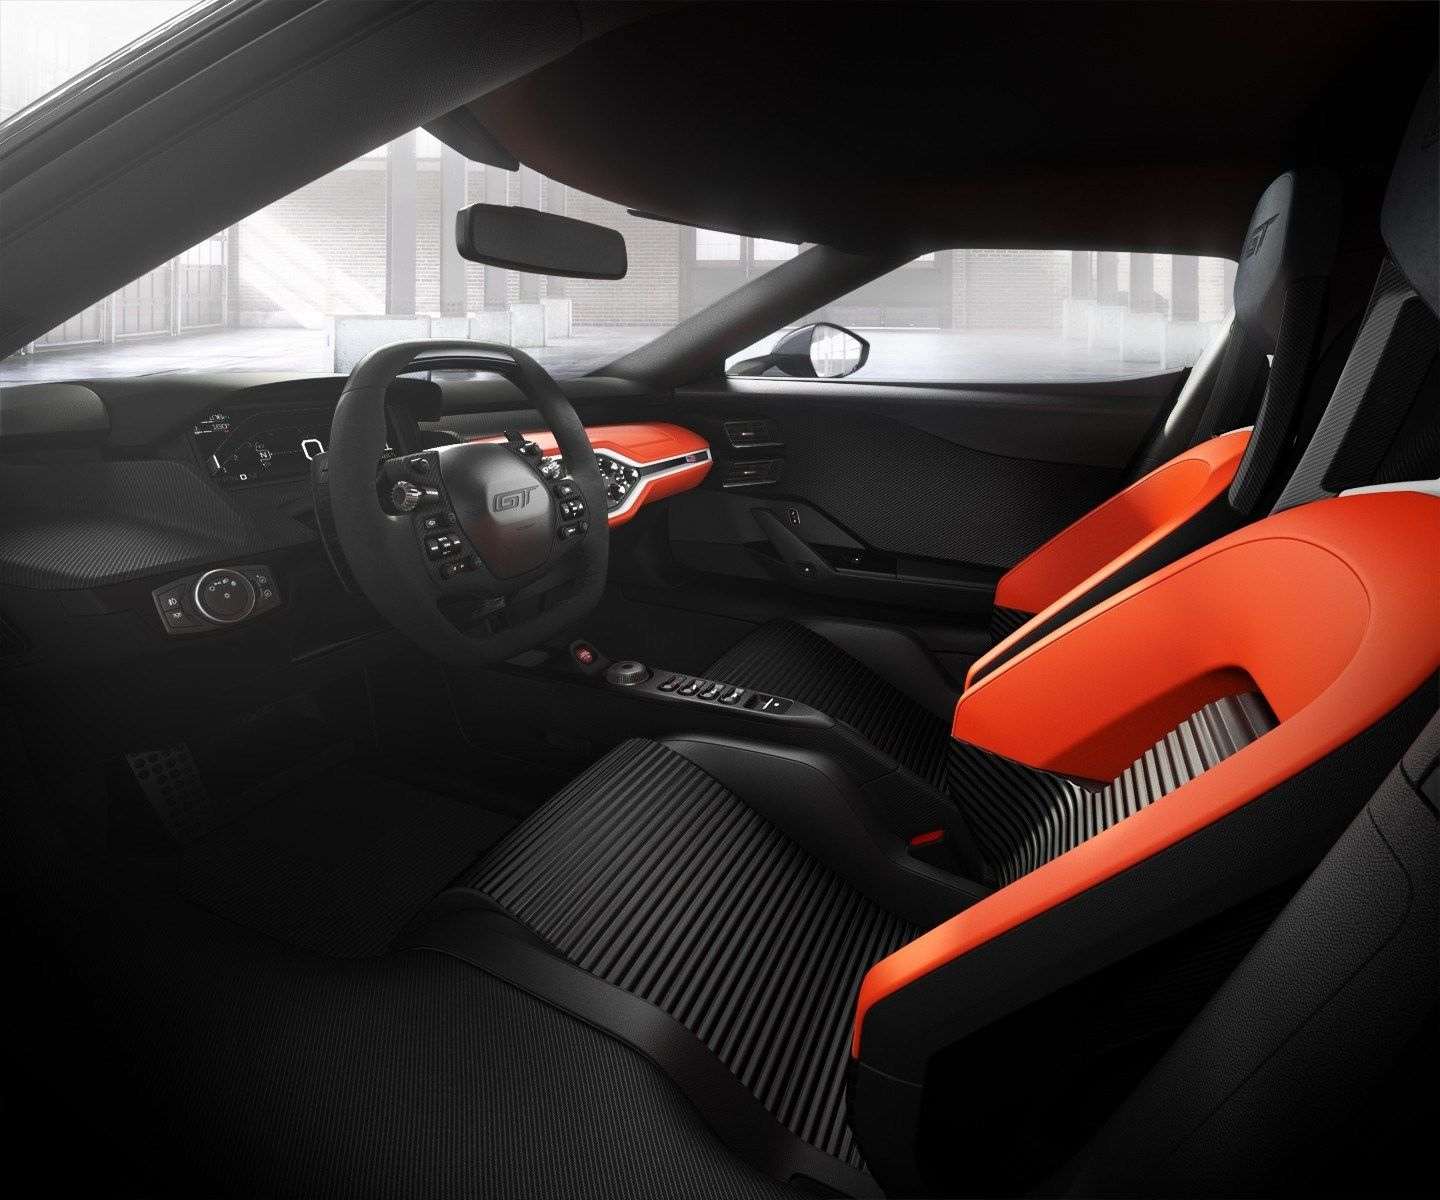 Ford Supercar Interior Teyangan Com Ford Gt Ford Sports Cars Super Cars